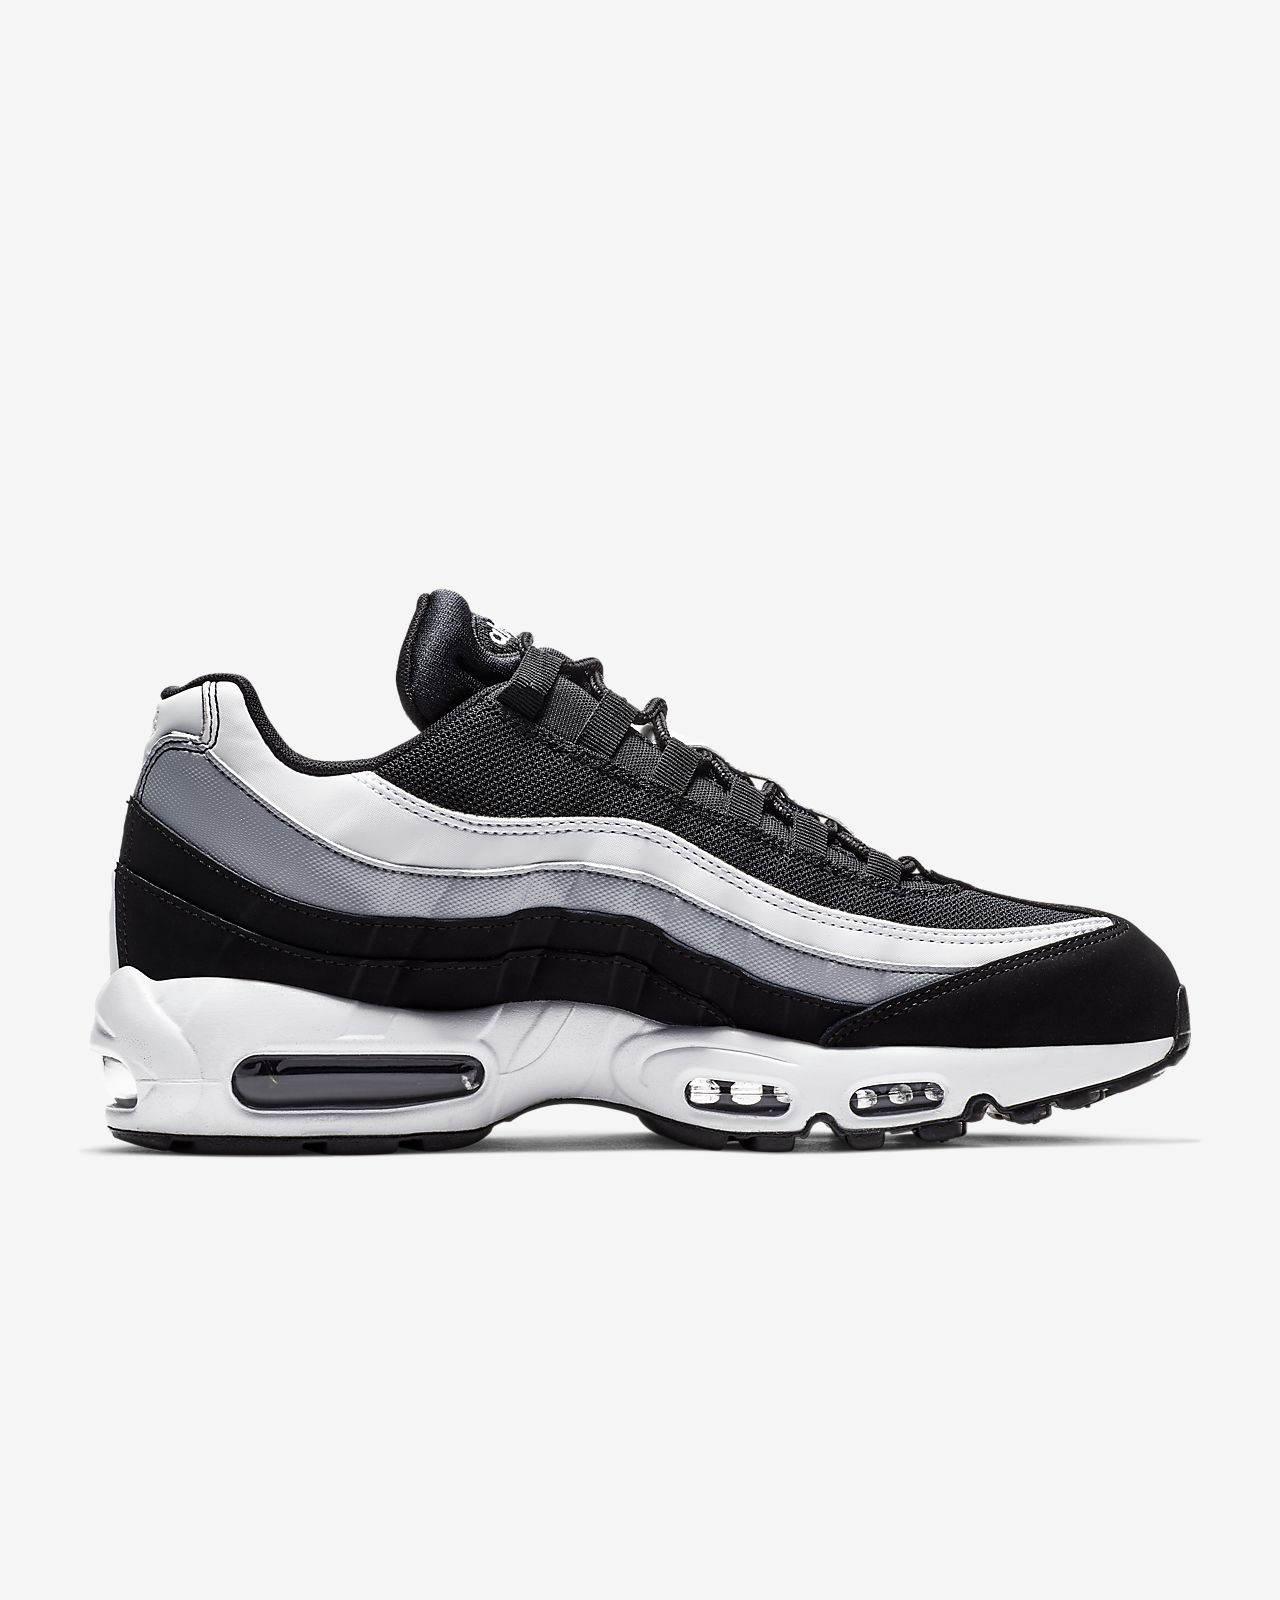 a8f8b1bd88376 Nike Air Max 95 Essential Men's Shoe. Nike.com ID